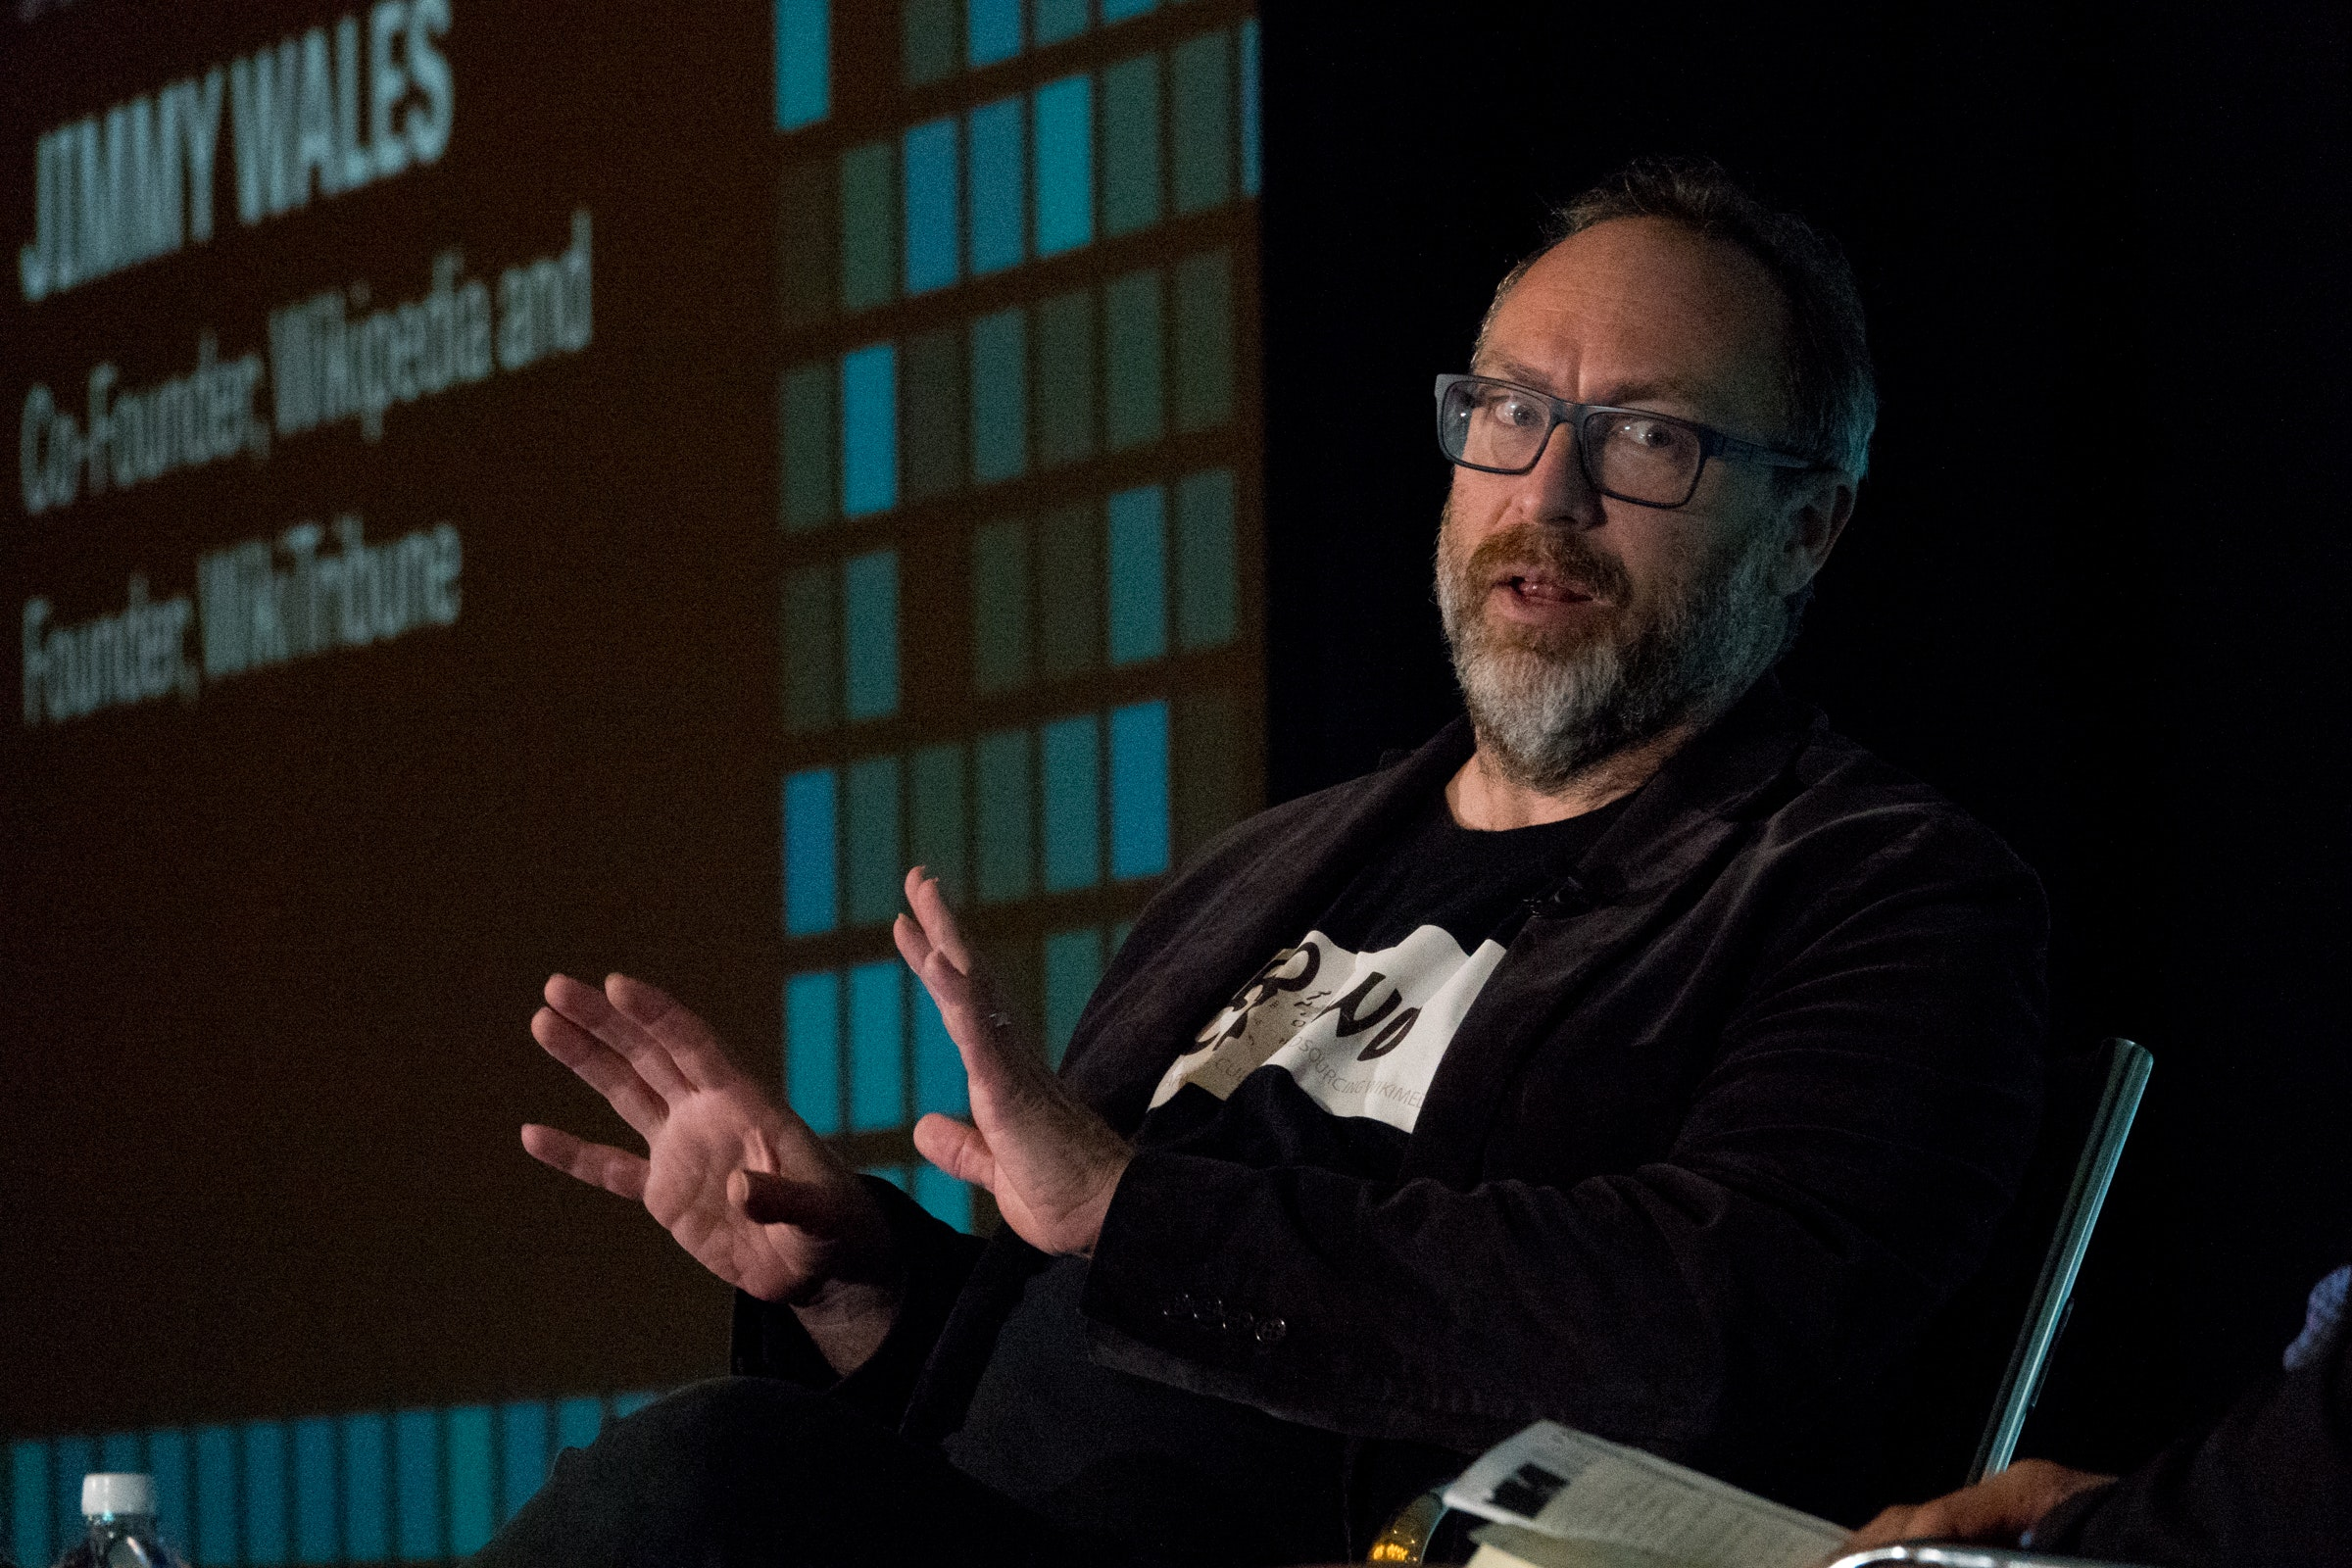 <p>Jimmy Wales, co-founder, Wikipedia and founder WikiTribune, speaks about innovative ways to work with communities to help provide them with the journalism resources they need. Photo: Angel Valentin</p>